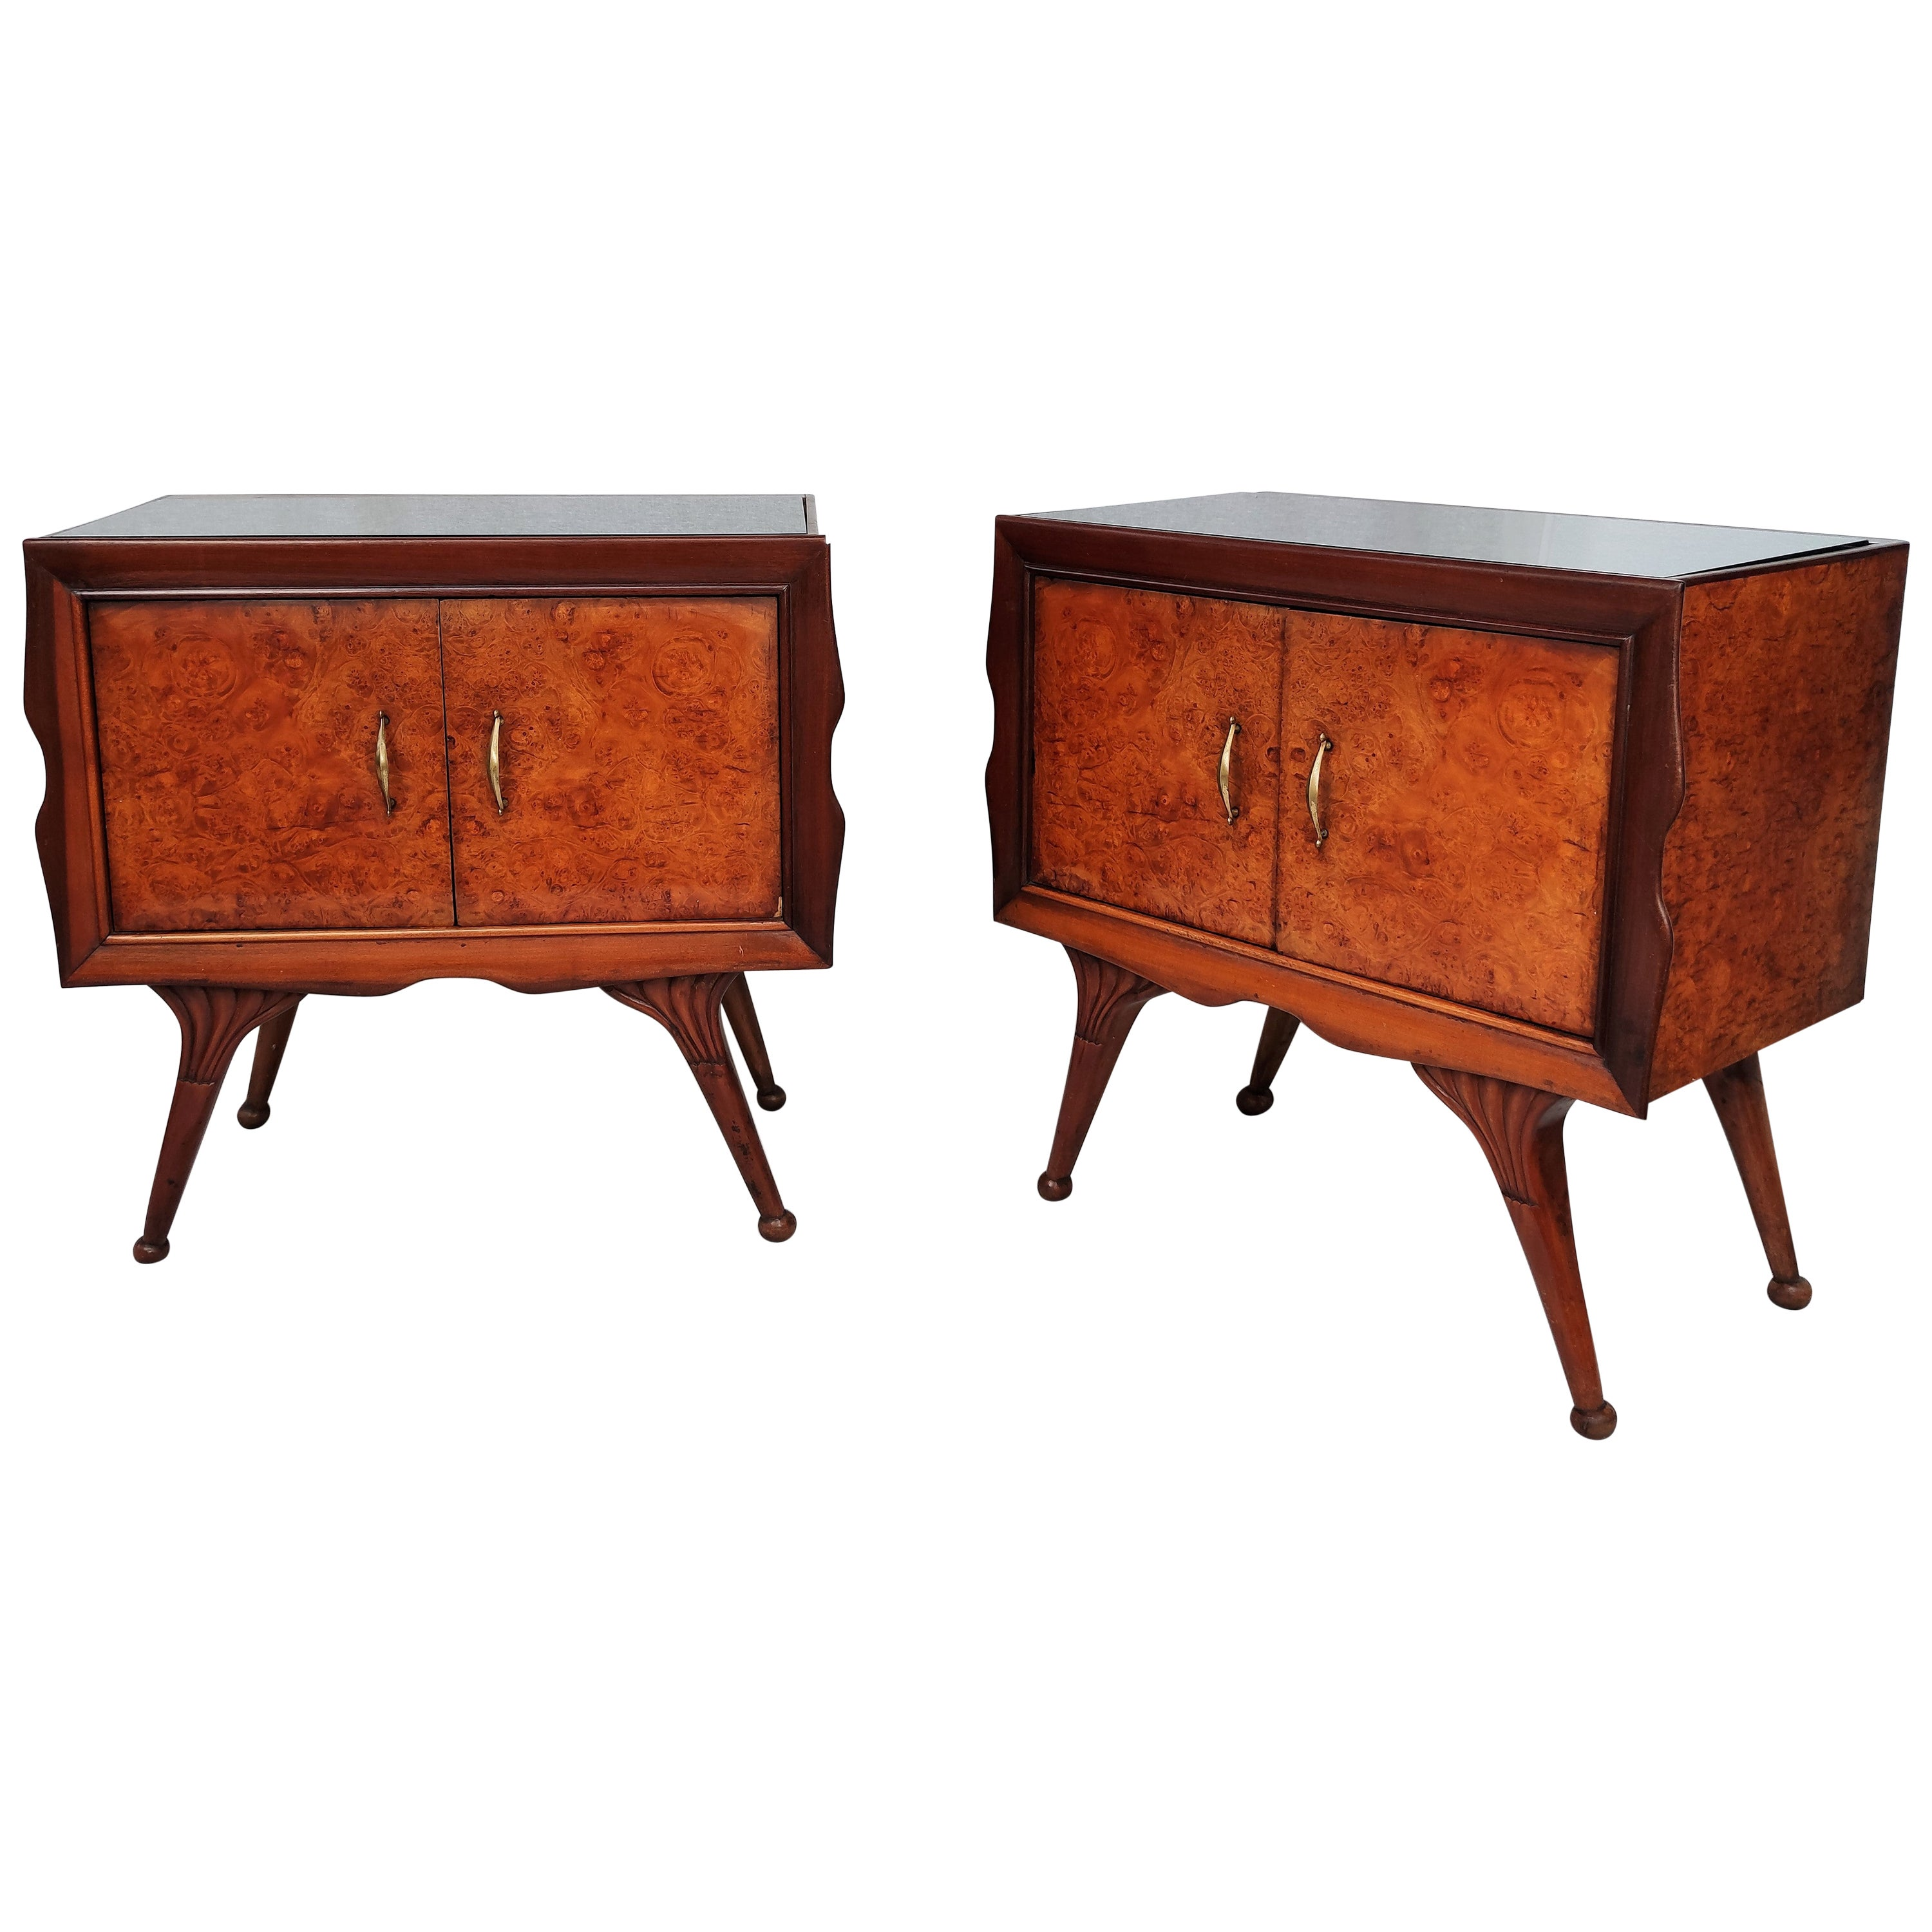 Italian Midcentury Art Deco Nightstands Bed Side Tables Briar Walnut Brass Glass